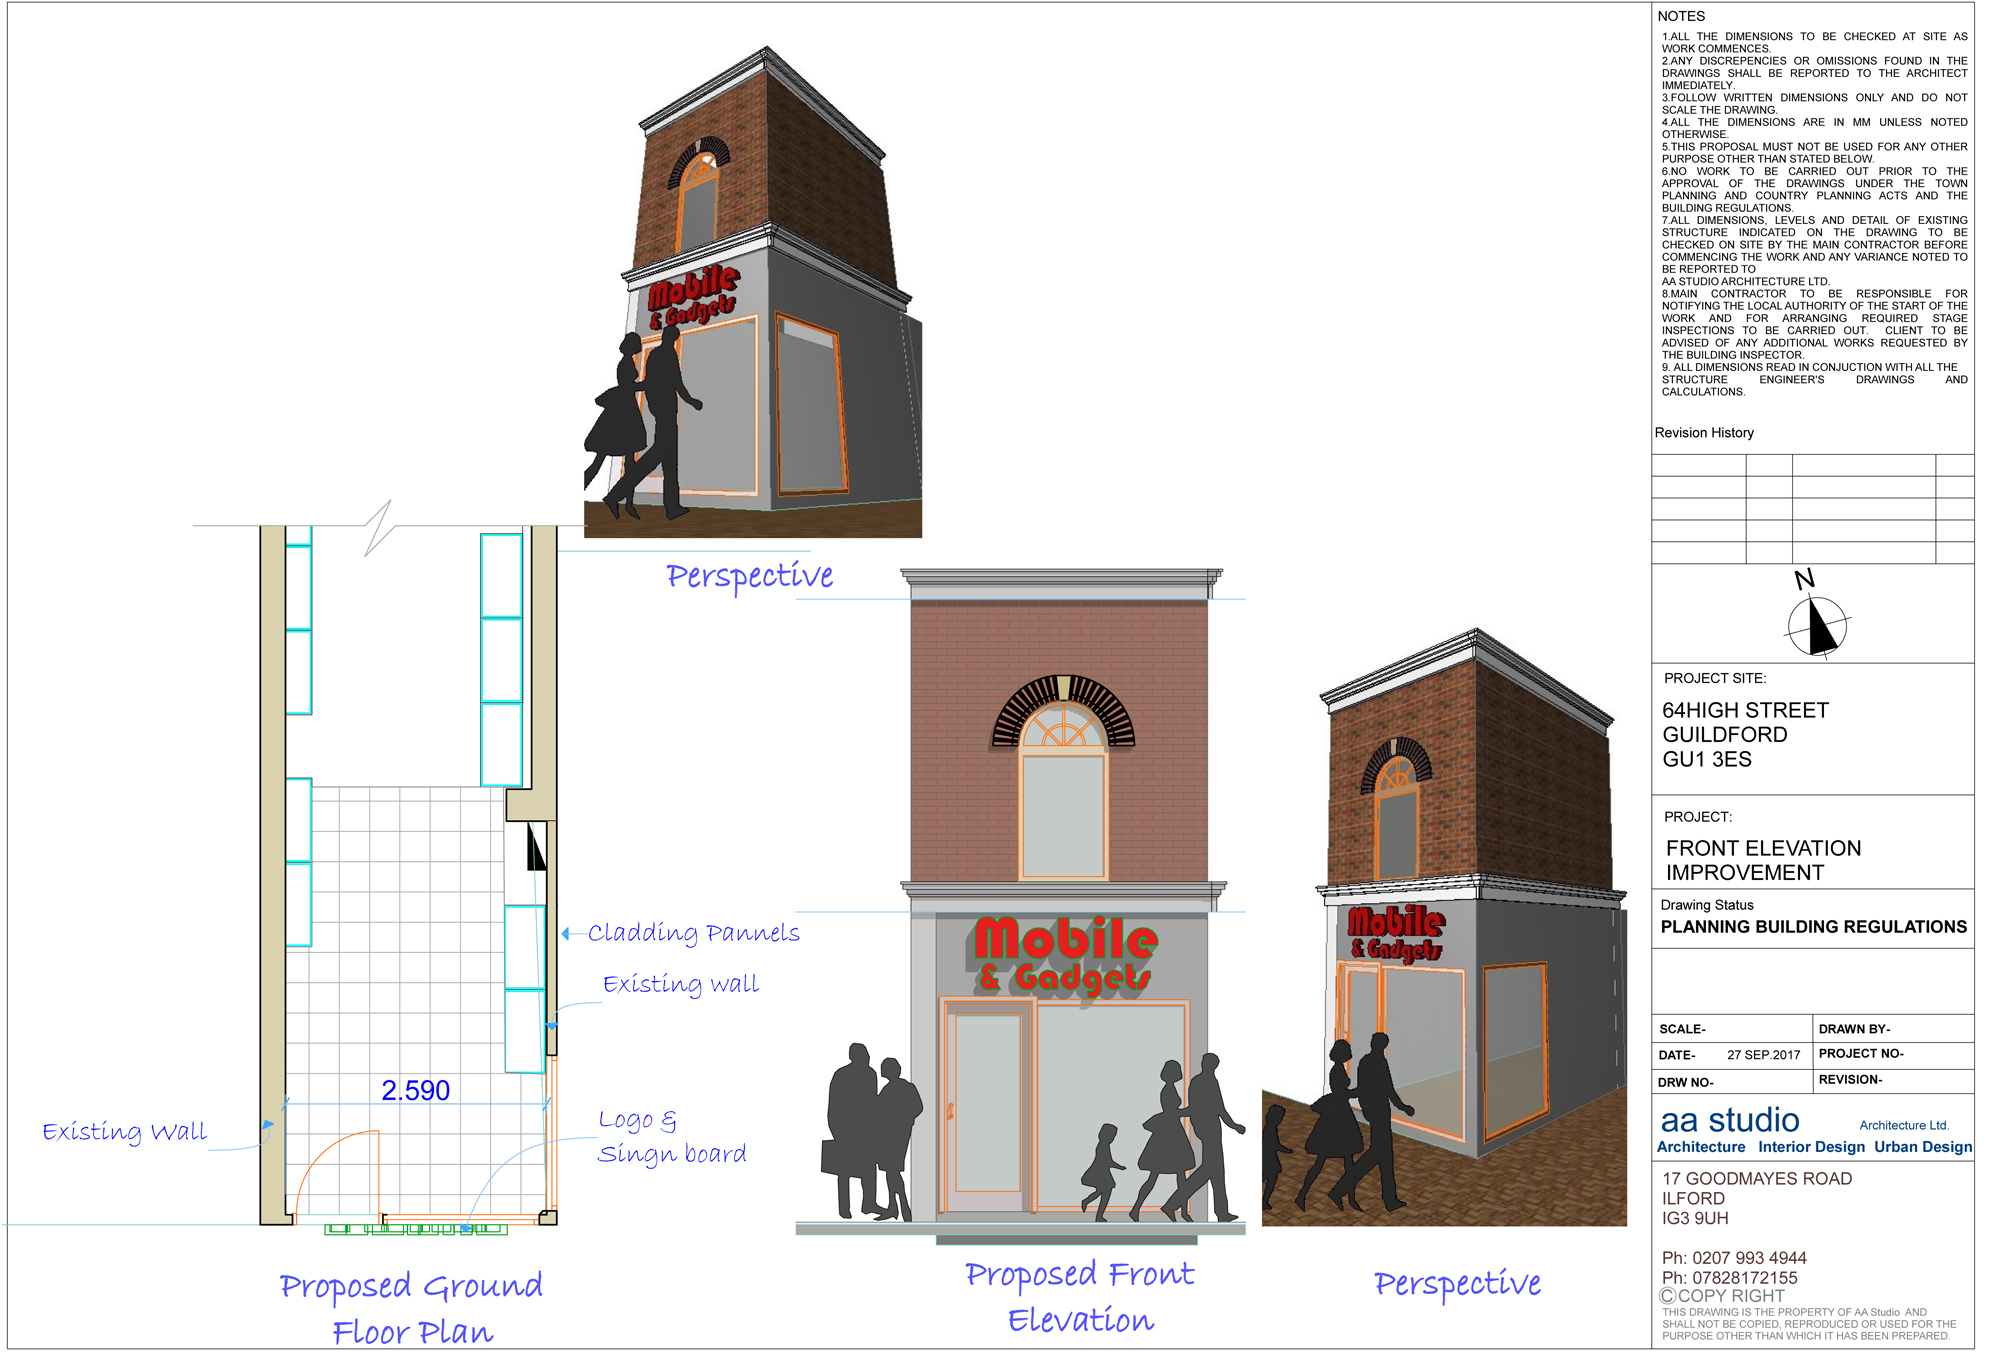 Planning permission Guildford